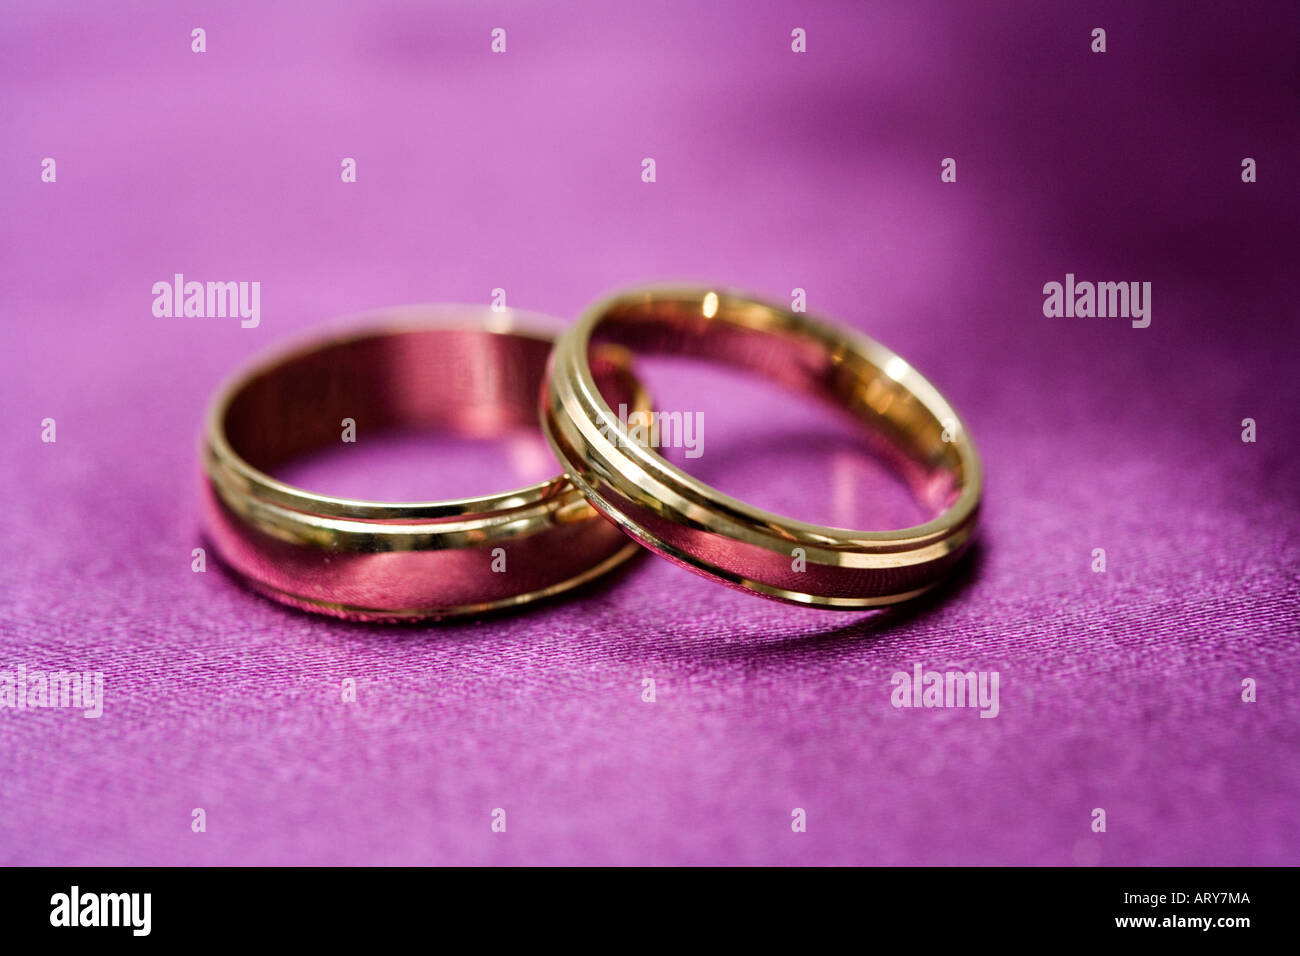 Betroth Stock Photos & Betroth Stock Images - Alamy